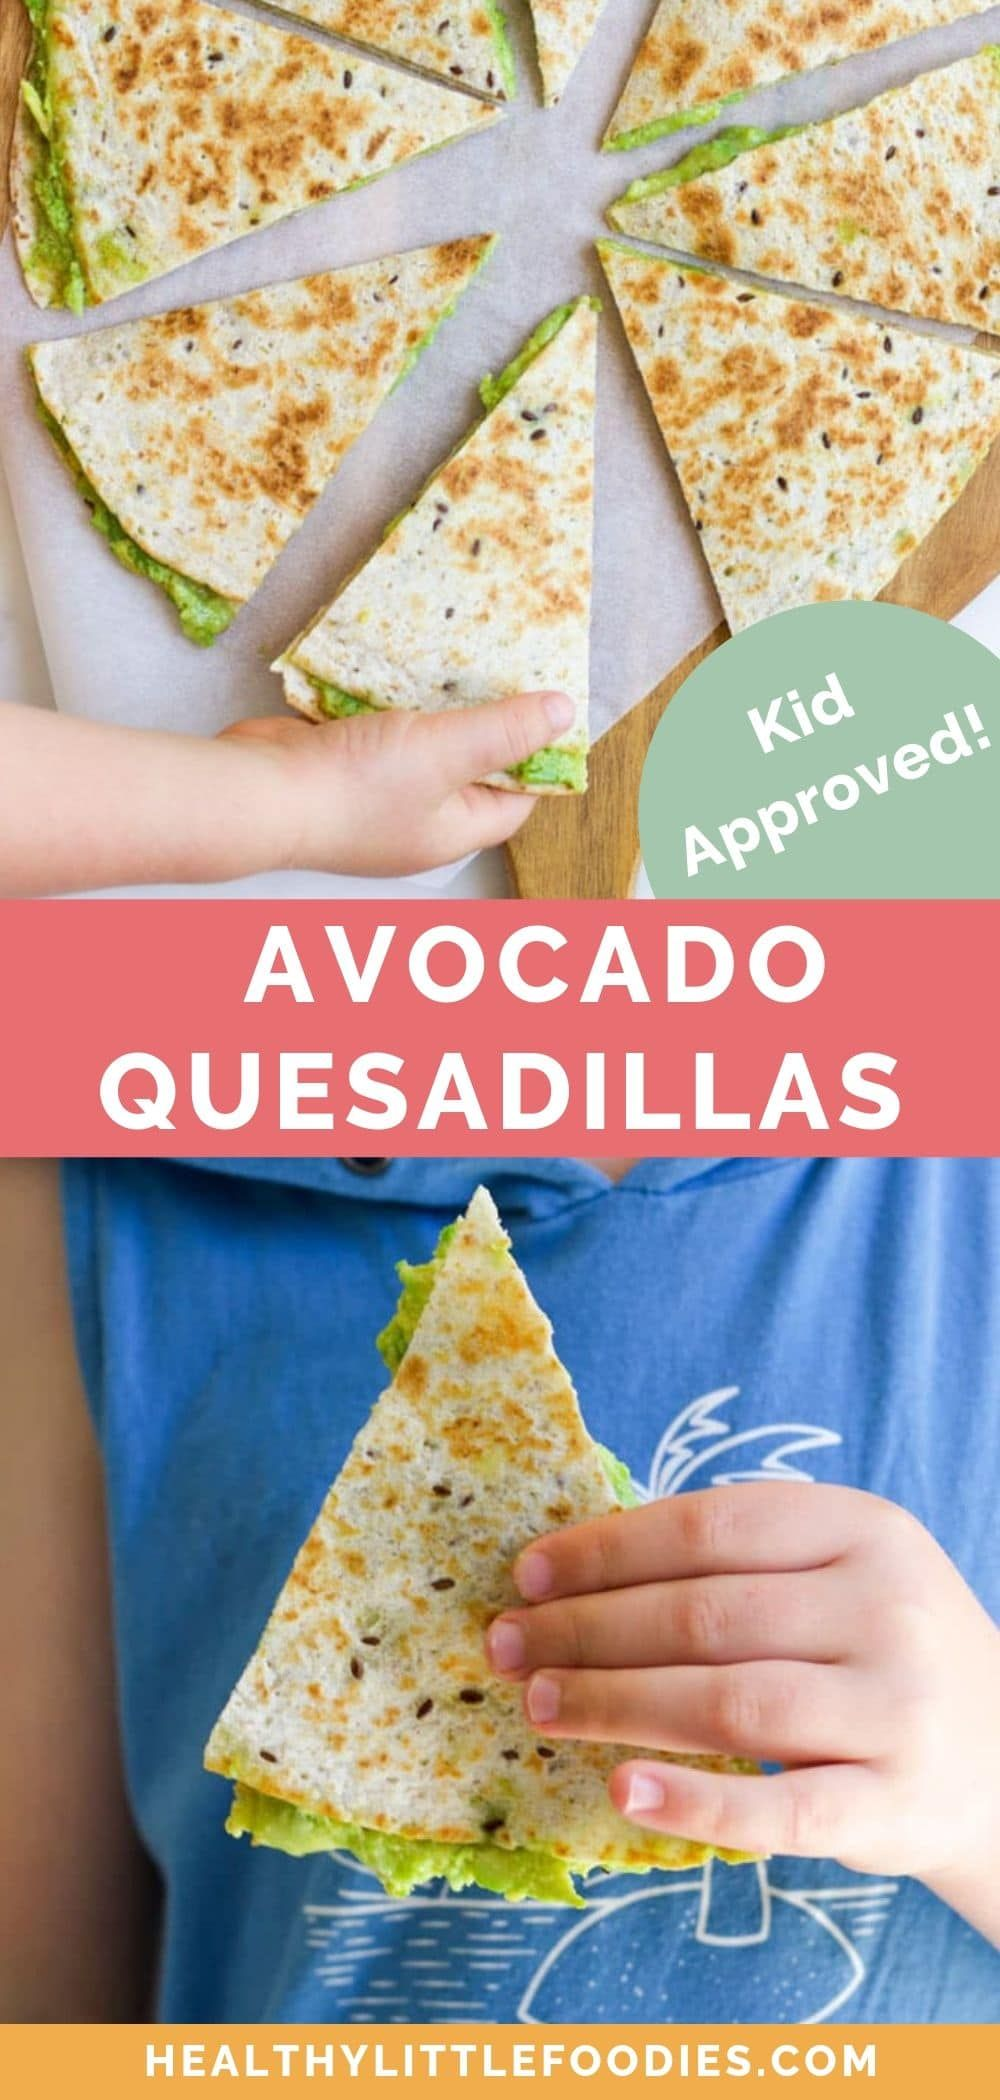 Avocado Quesadilla #kochenundbacken